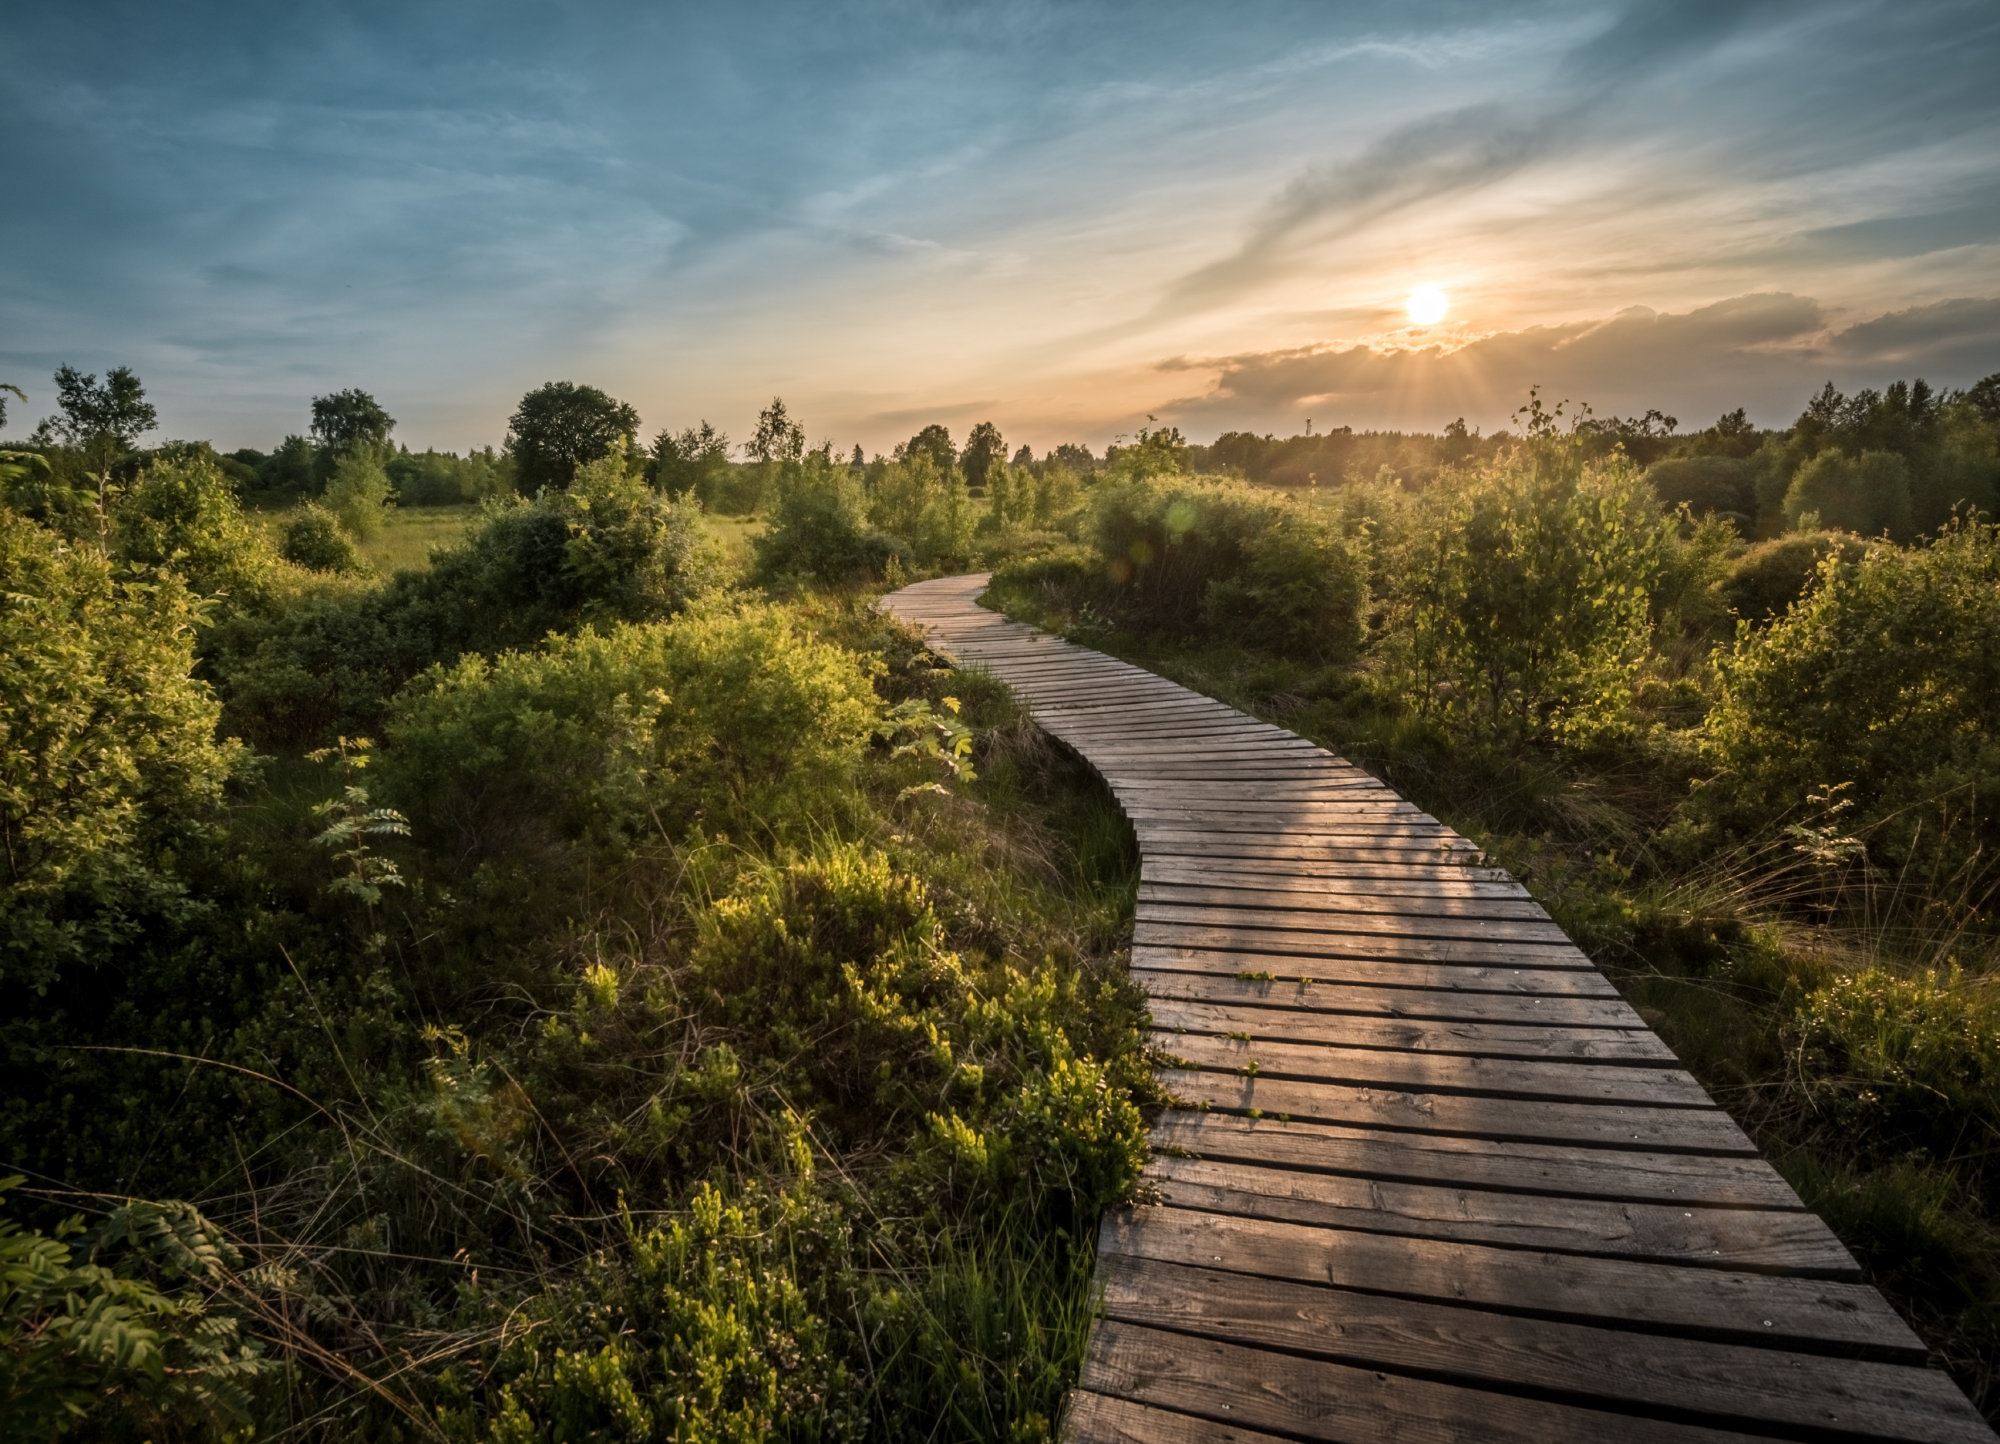 wooden path through a green landscape with the sun shining in the distance